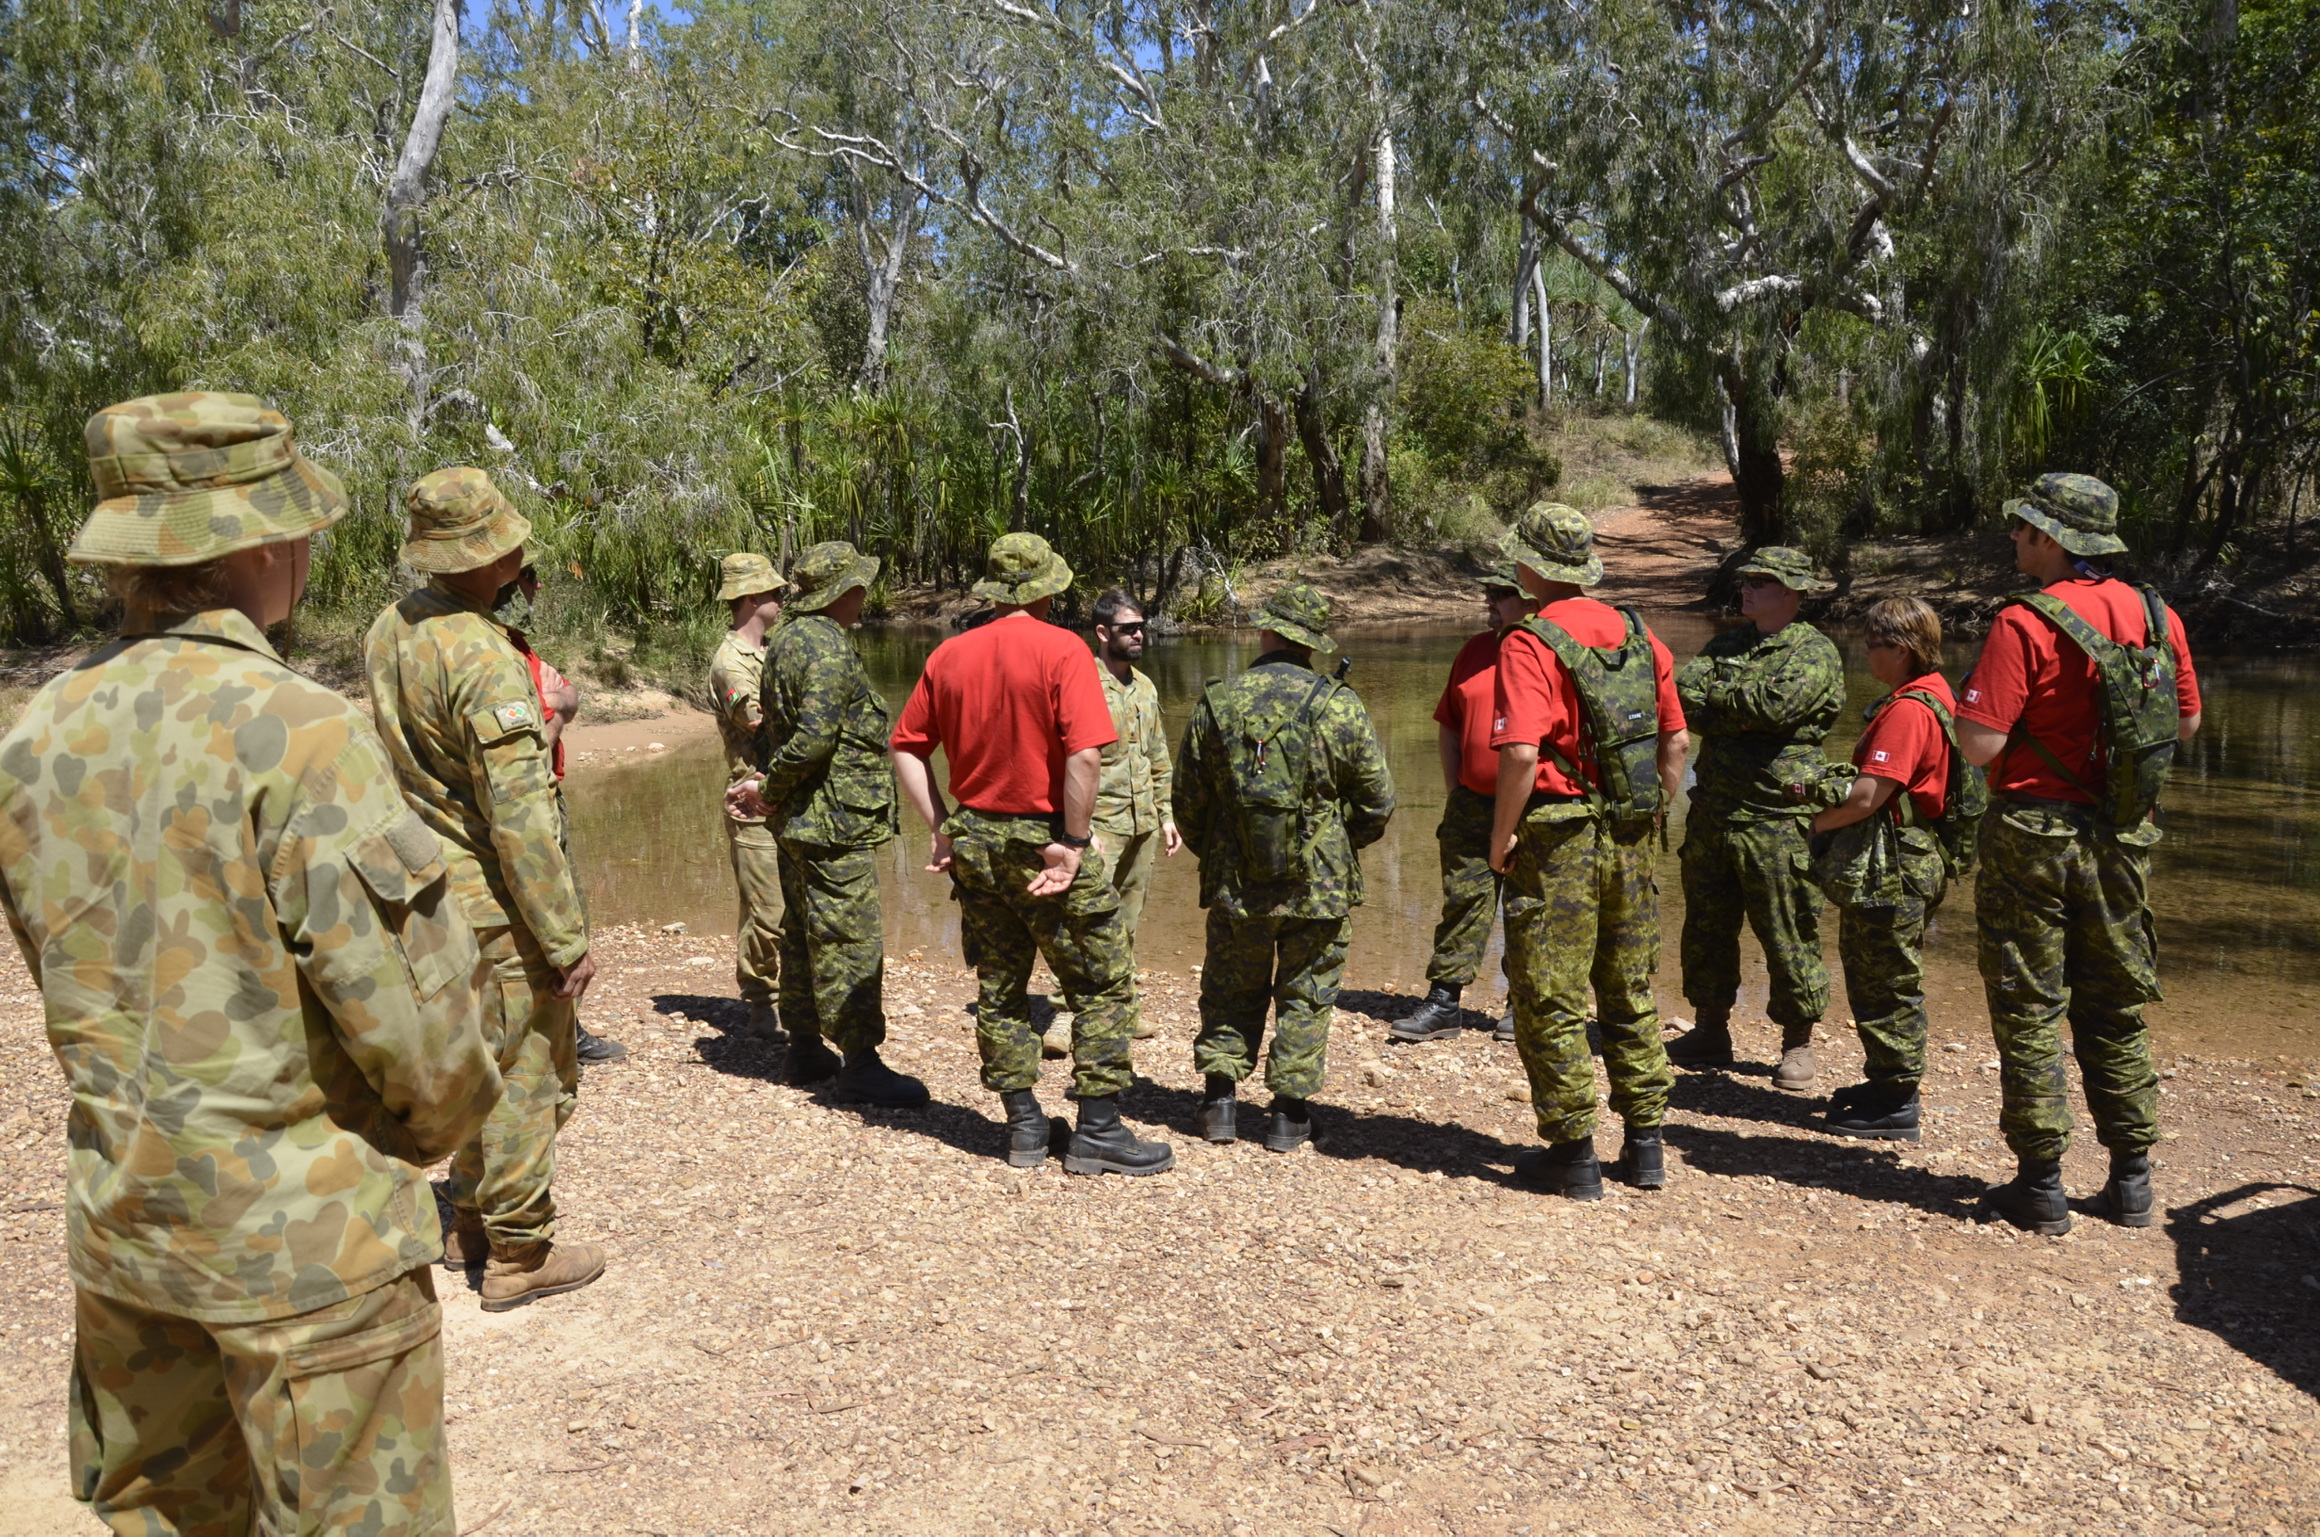 Northern Territory, Australia —Members of the 4th Canadian Ranger Patrol Group recently participated in an exchange with some of their Australian counterparts in the North West Mobile Force (NORFORCE), an Army Reserve infantry regiment of the Australian Army, and visited the remote Northern Territory.